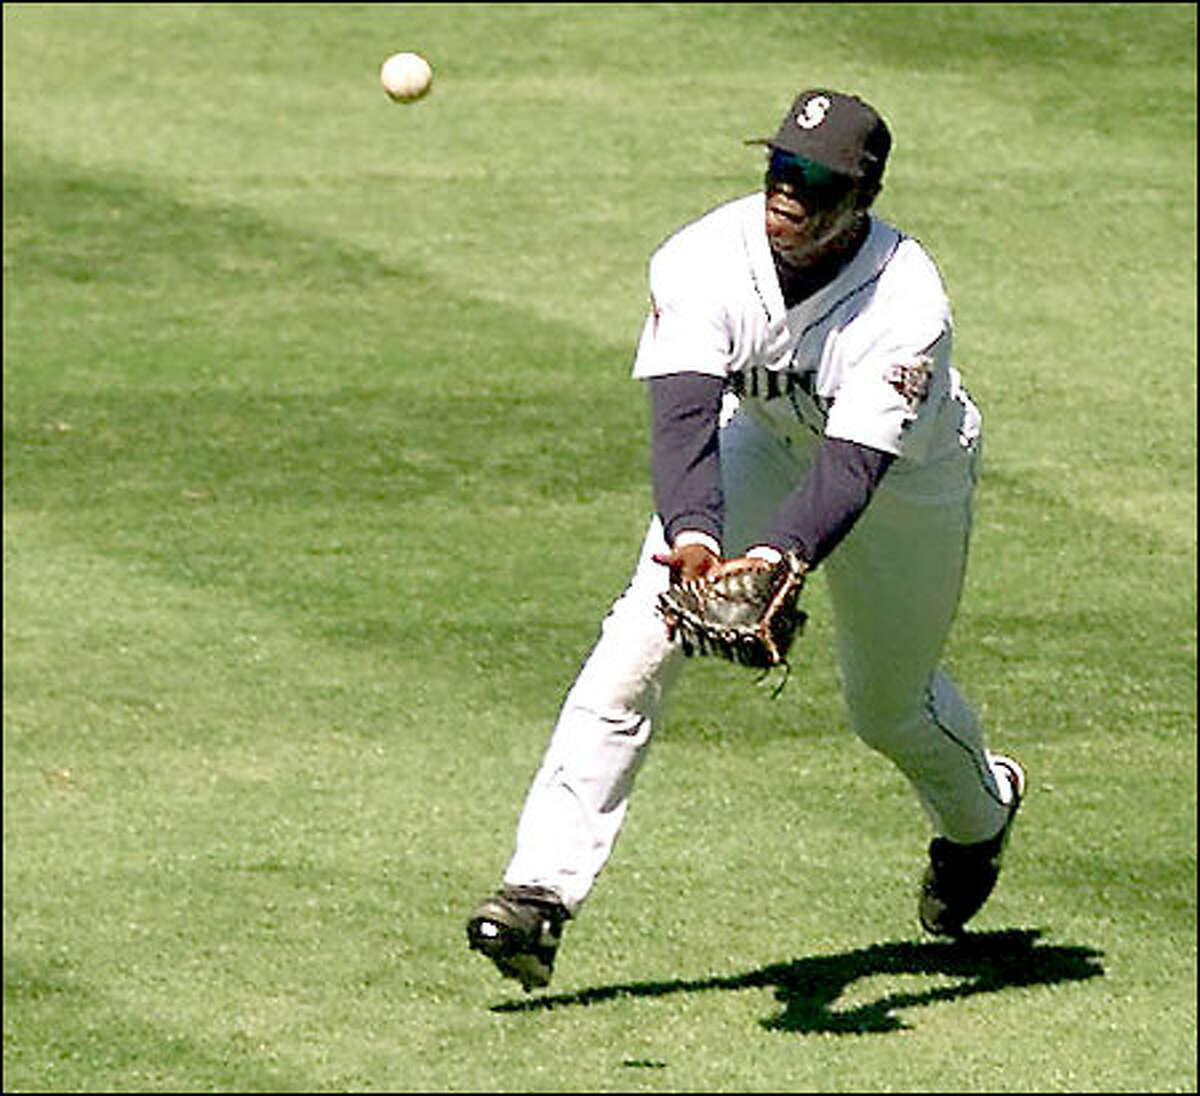 Center fielder Mike Cameron snags a sacrifice fly hit by New York's Bernie Williams in the third inning.